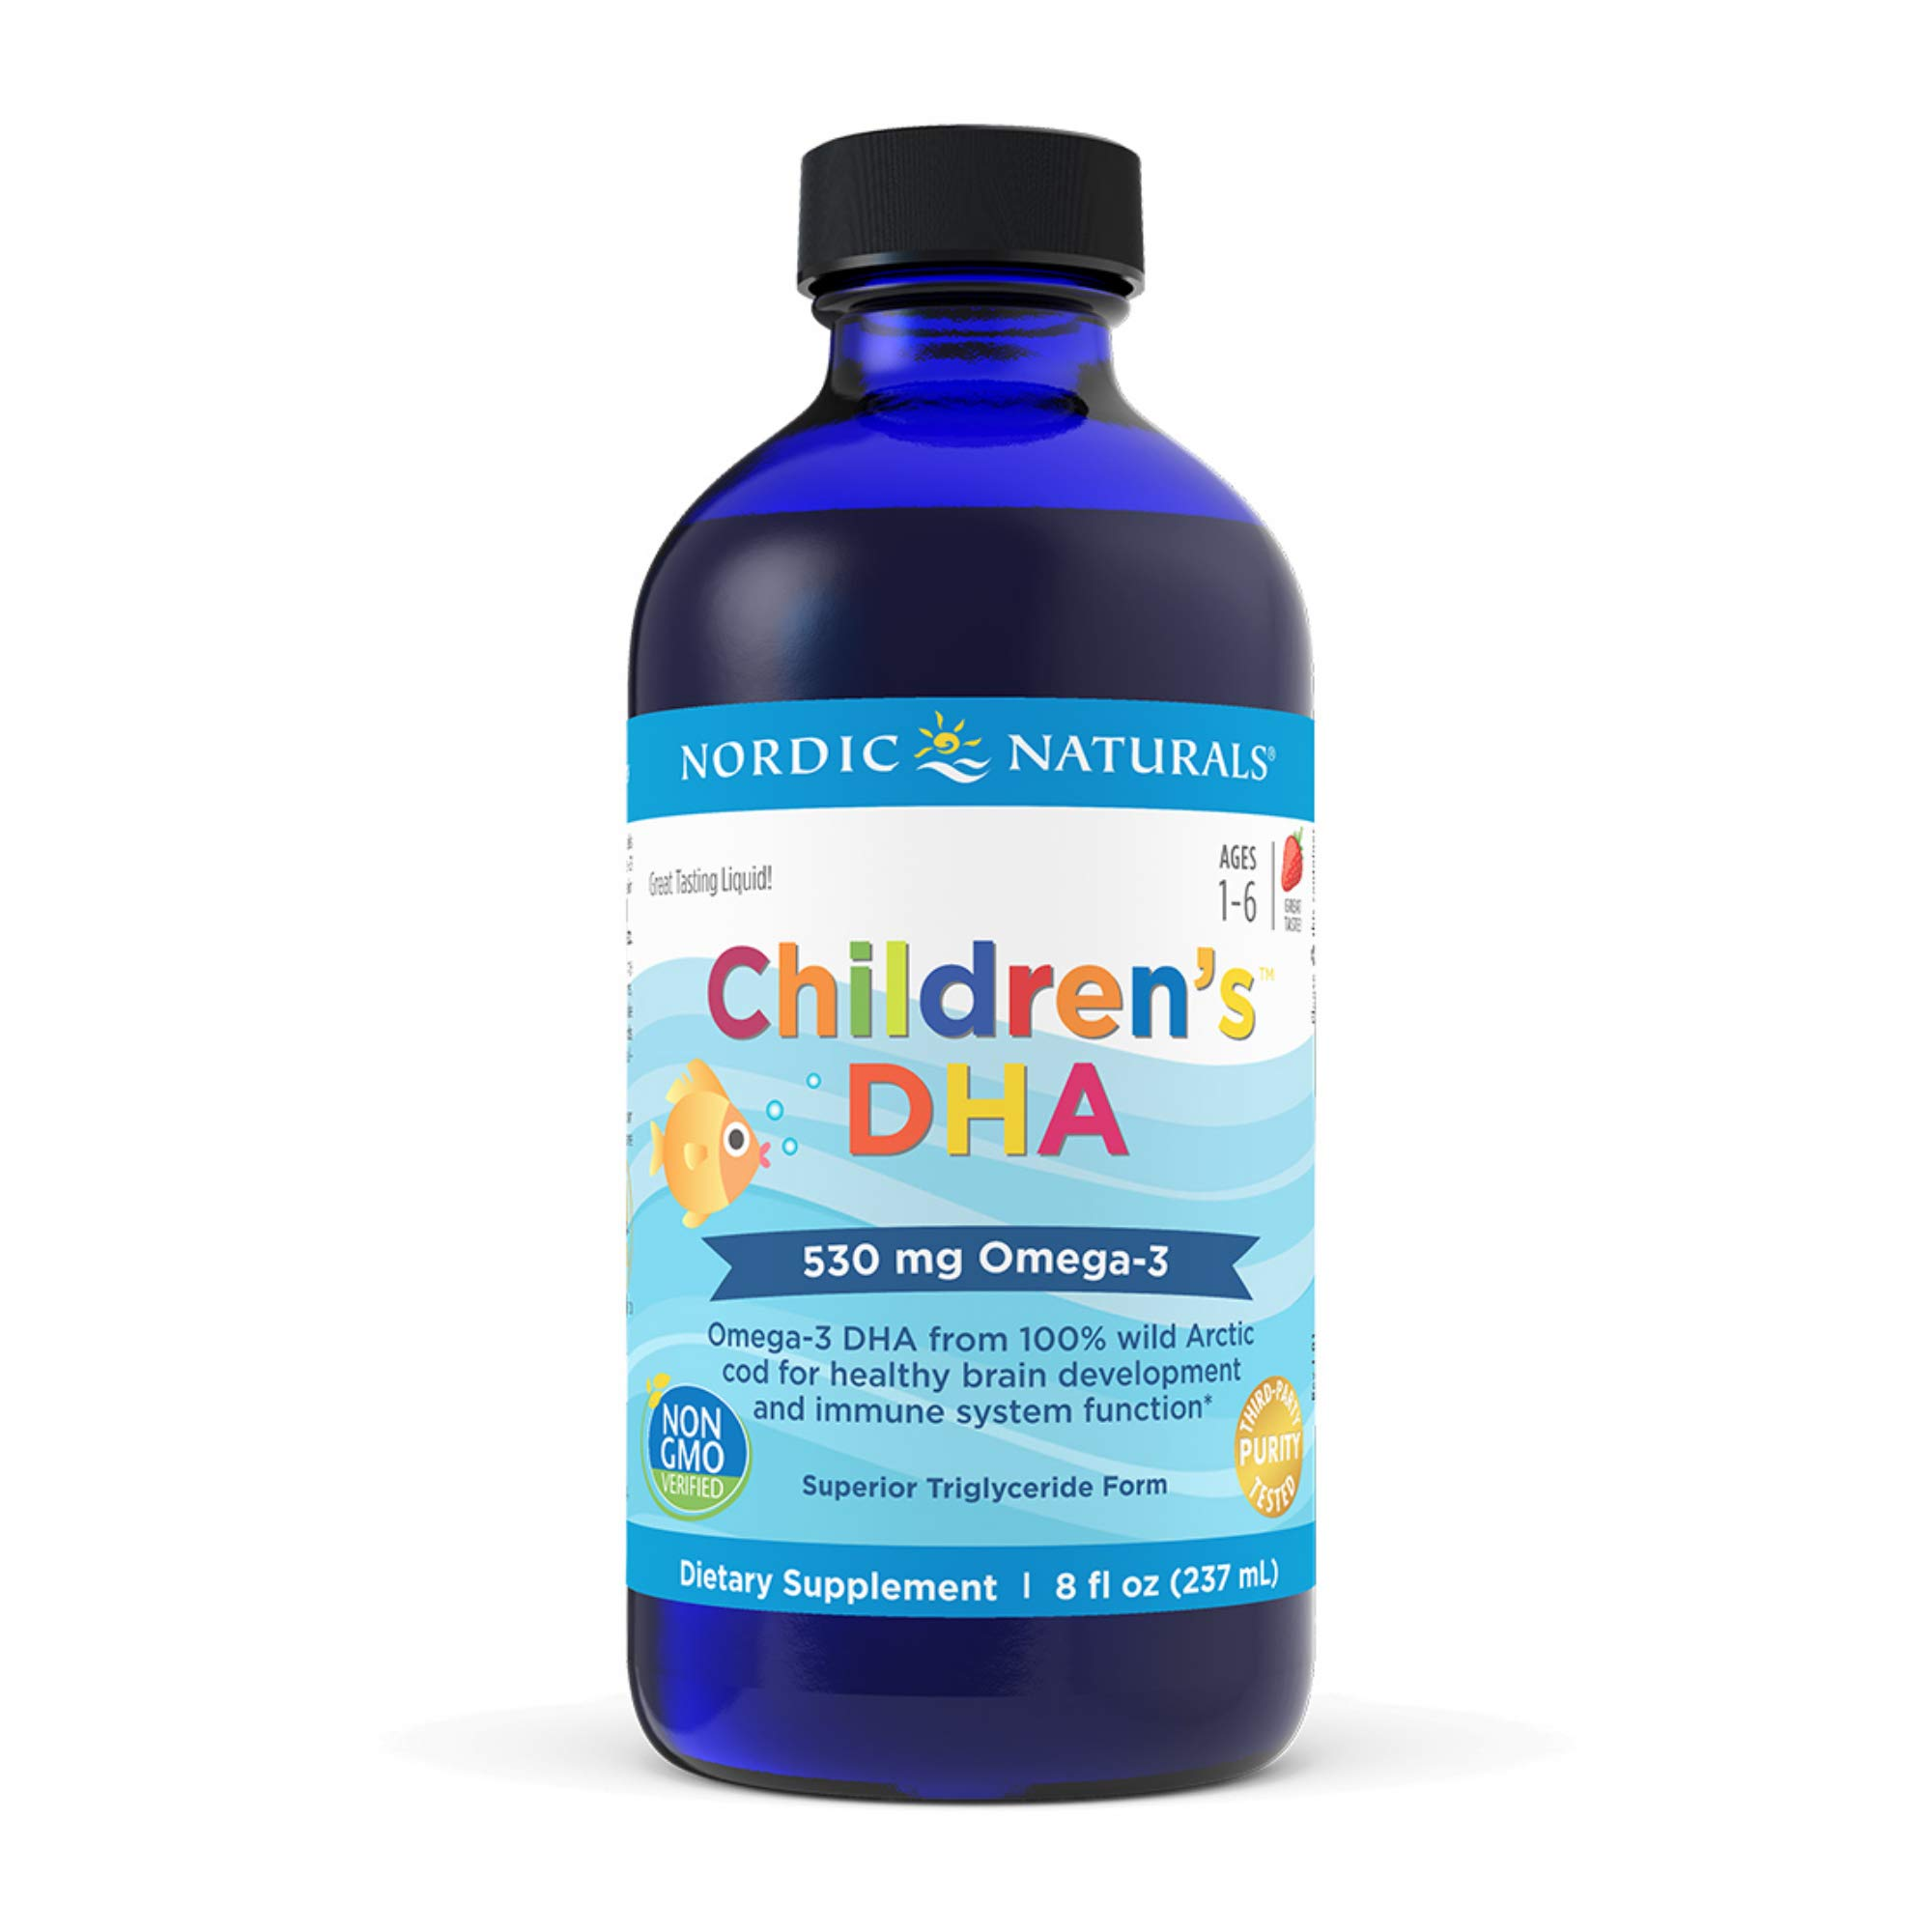 Nordic Naturals Children's DHA, Strawberry - 8 oz - 530 mg Omega-3 with EPA & DHA - Brain Development & Function - Non-GMO - 96 Servings